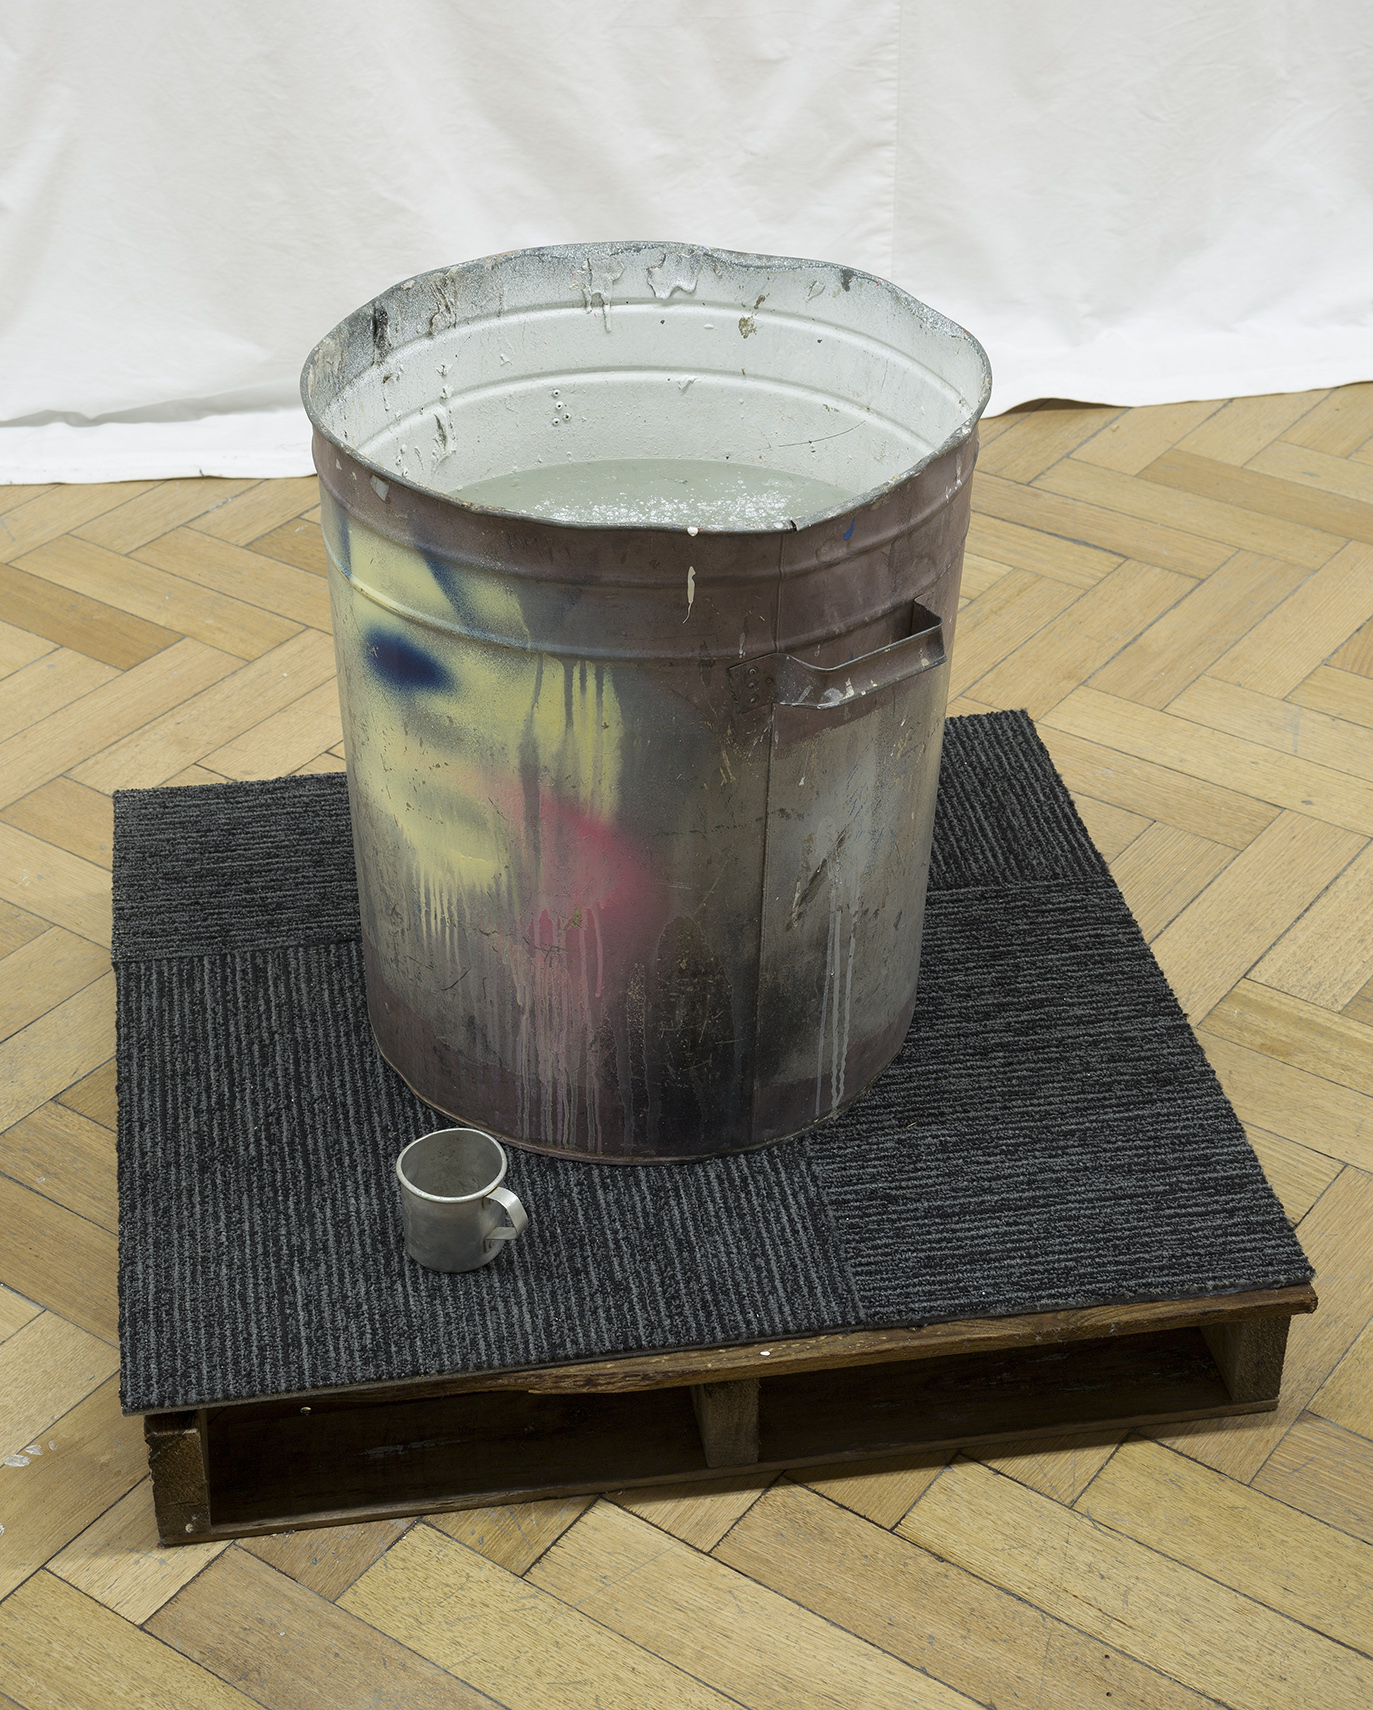 Swish or Swill, 2017. Found tin can, found tin cup, crate, carpet tiling, water and asbestos like talcum powder, 1200 X 900 X 1200 mm. Image: Christian Capurro